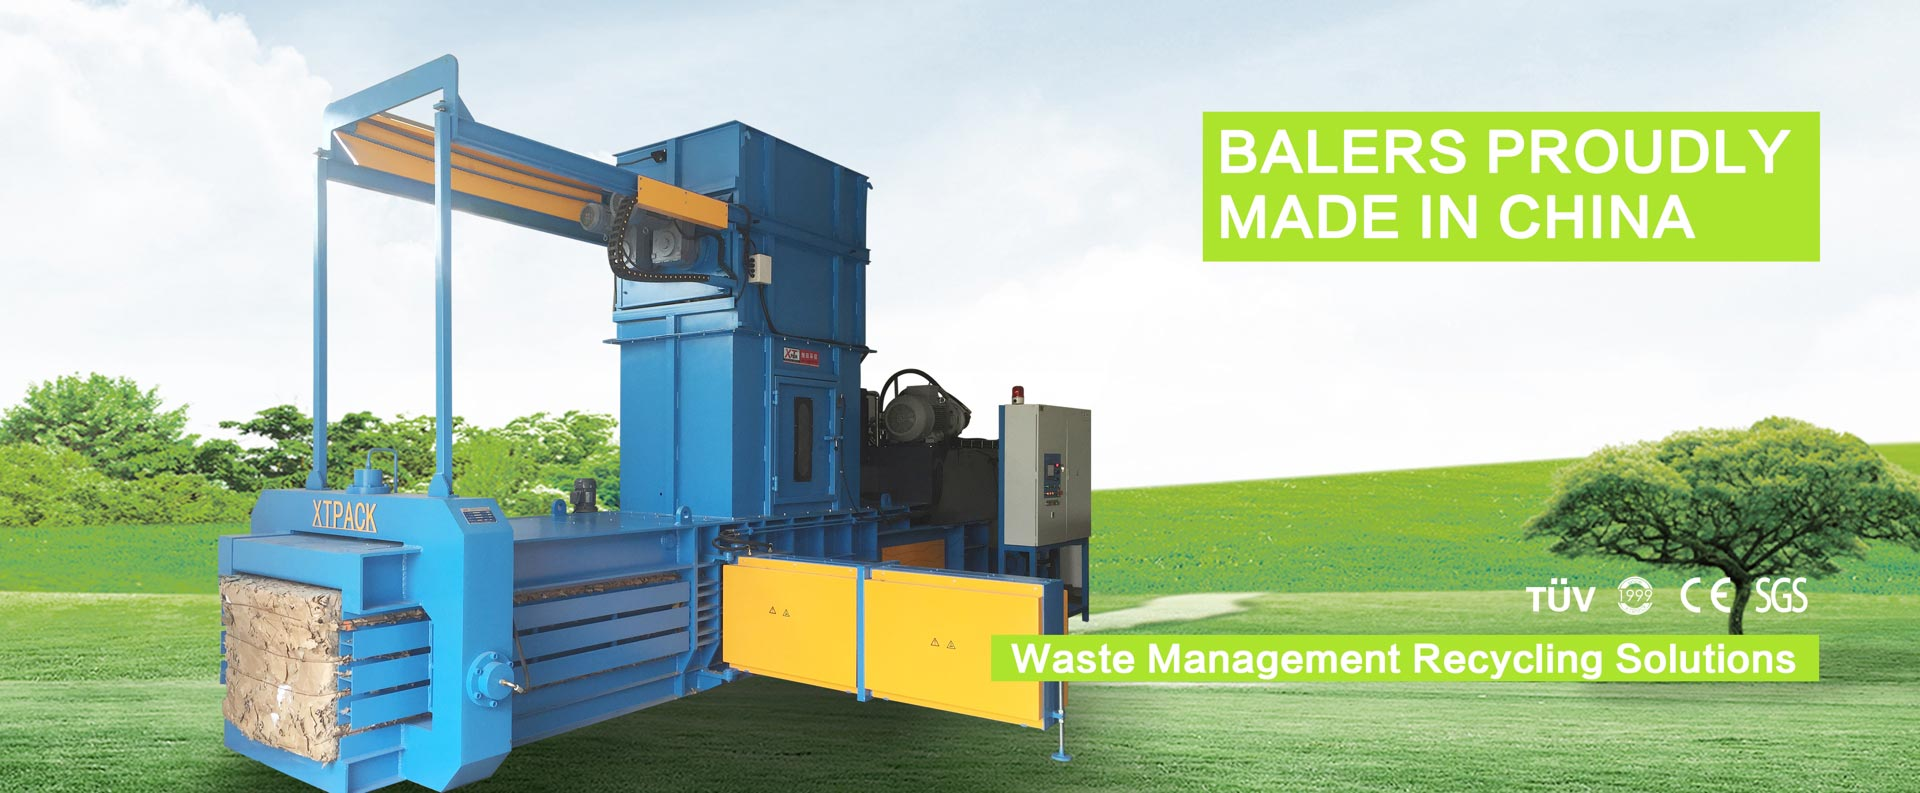 Baler Machines Made in China